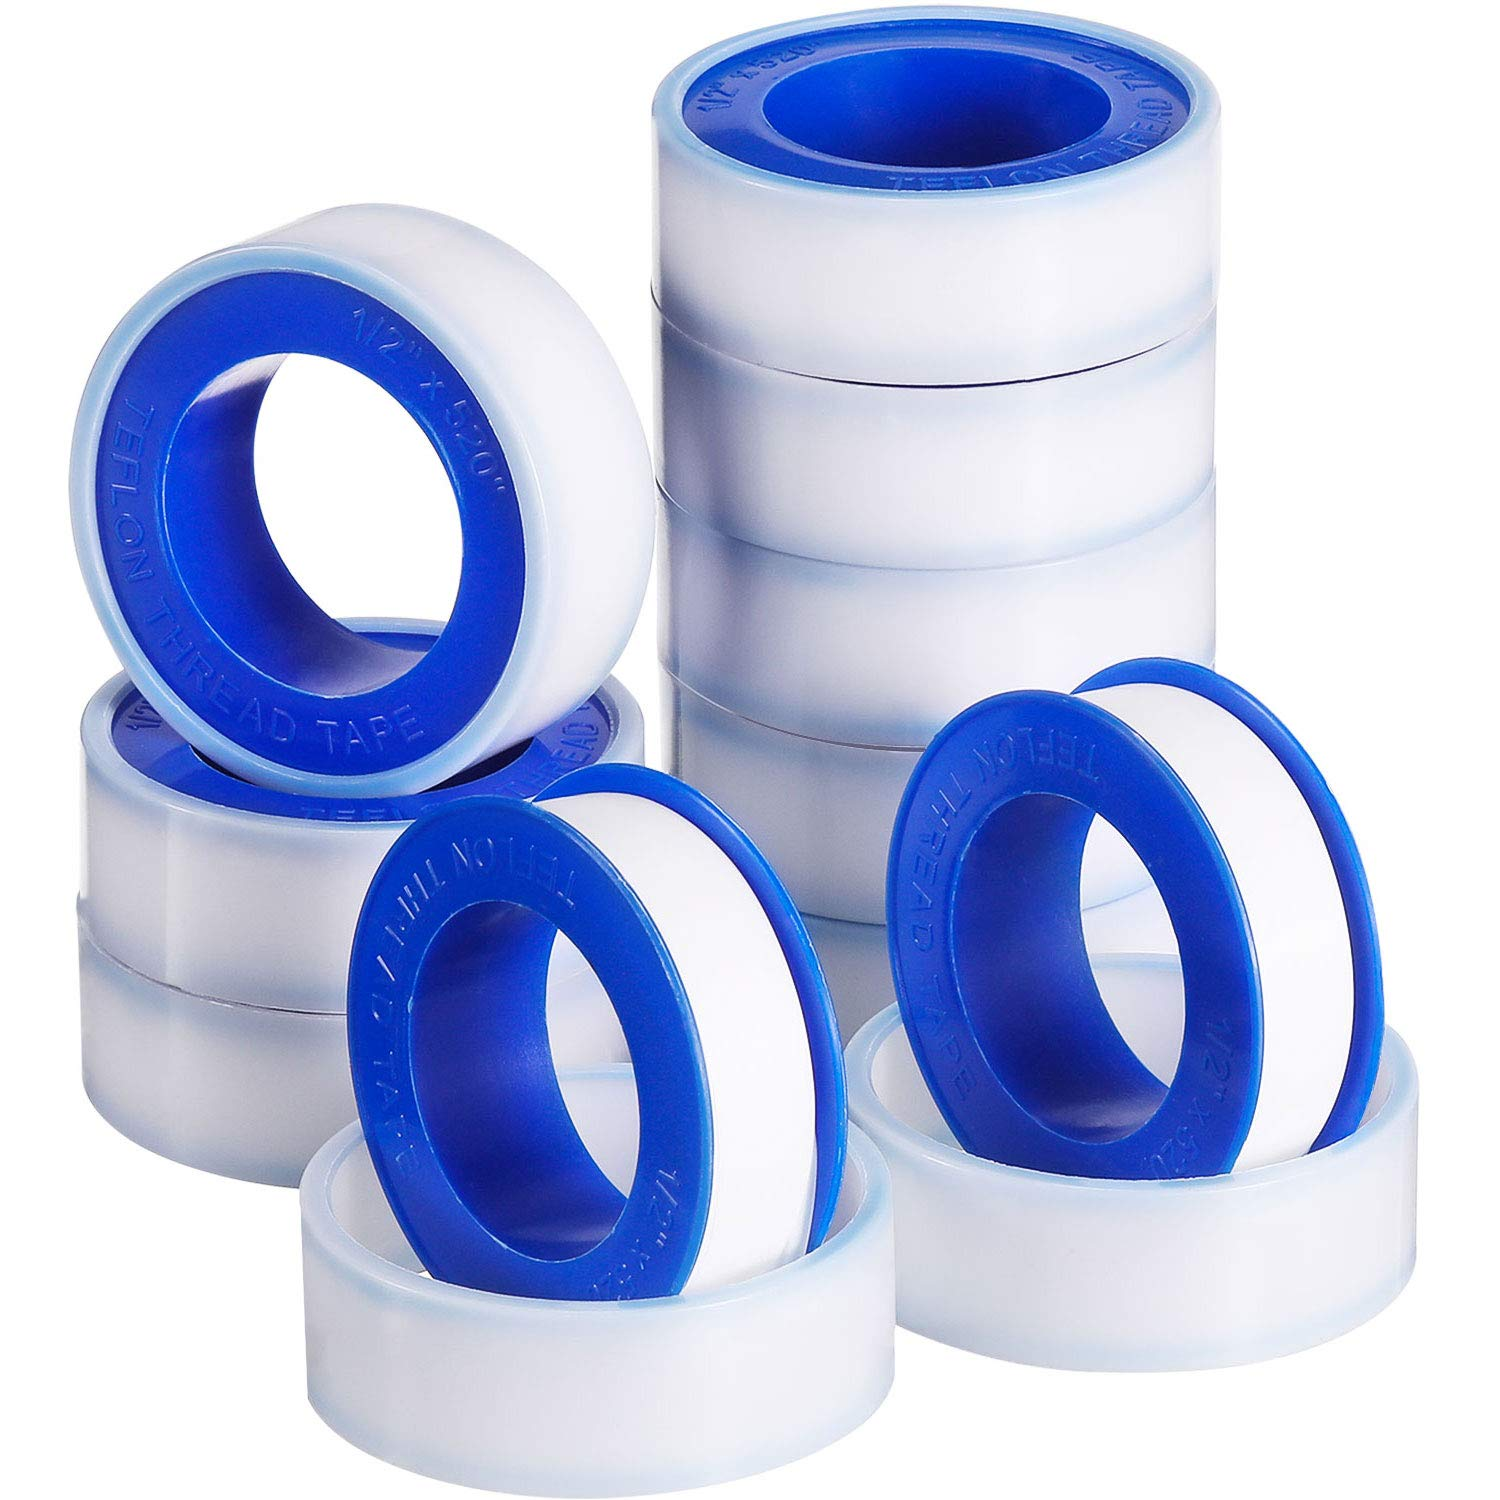 Skylety 10 Rolls Thread Seal Tapes, PTFE Pipe Sealant Tape (White, 1/2 by 520 Inches)